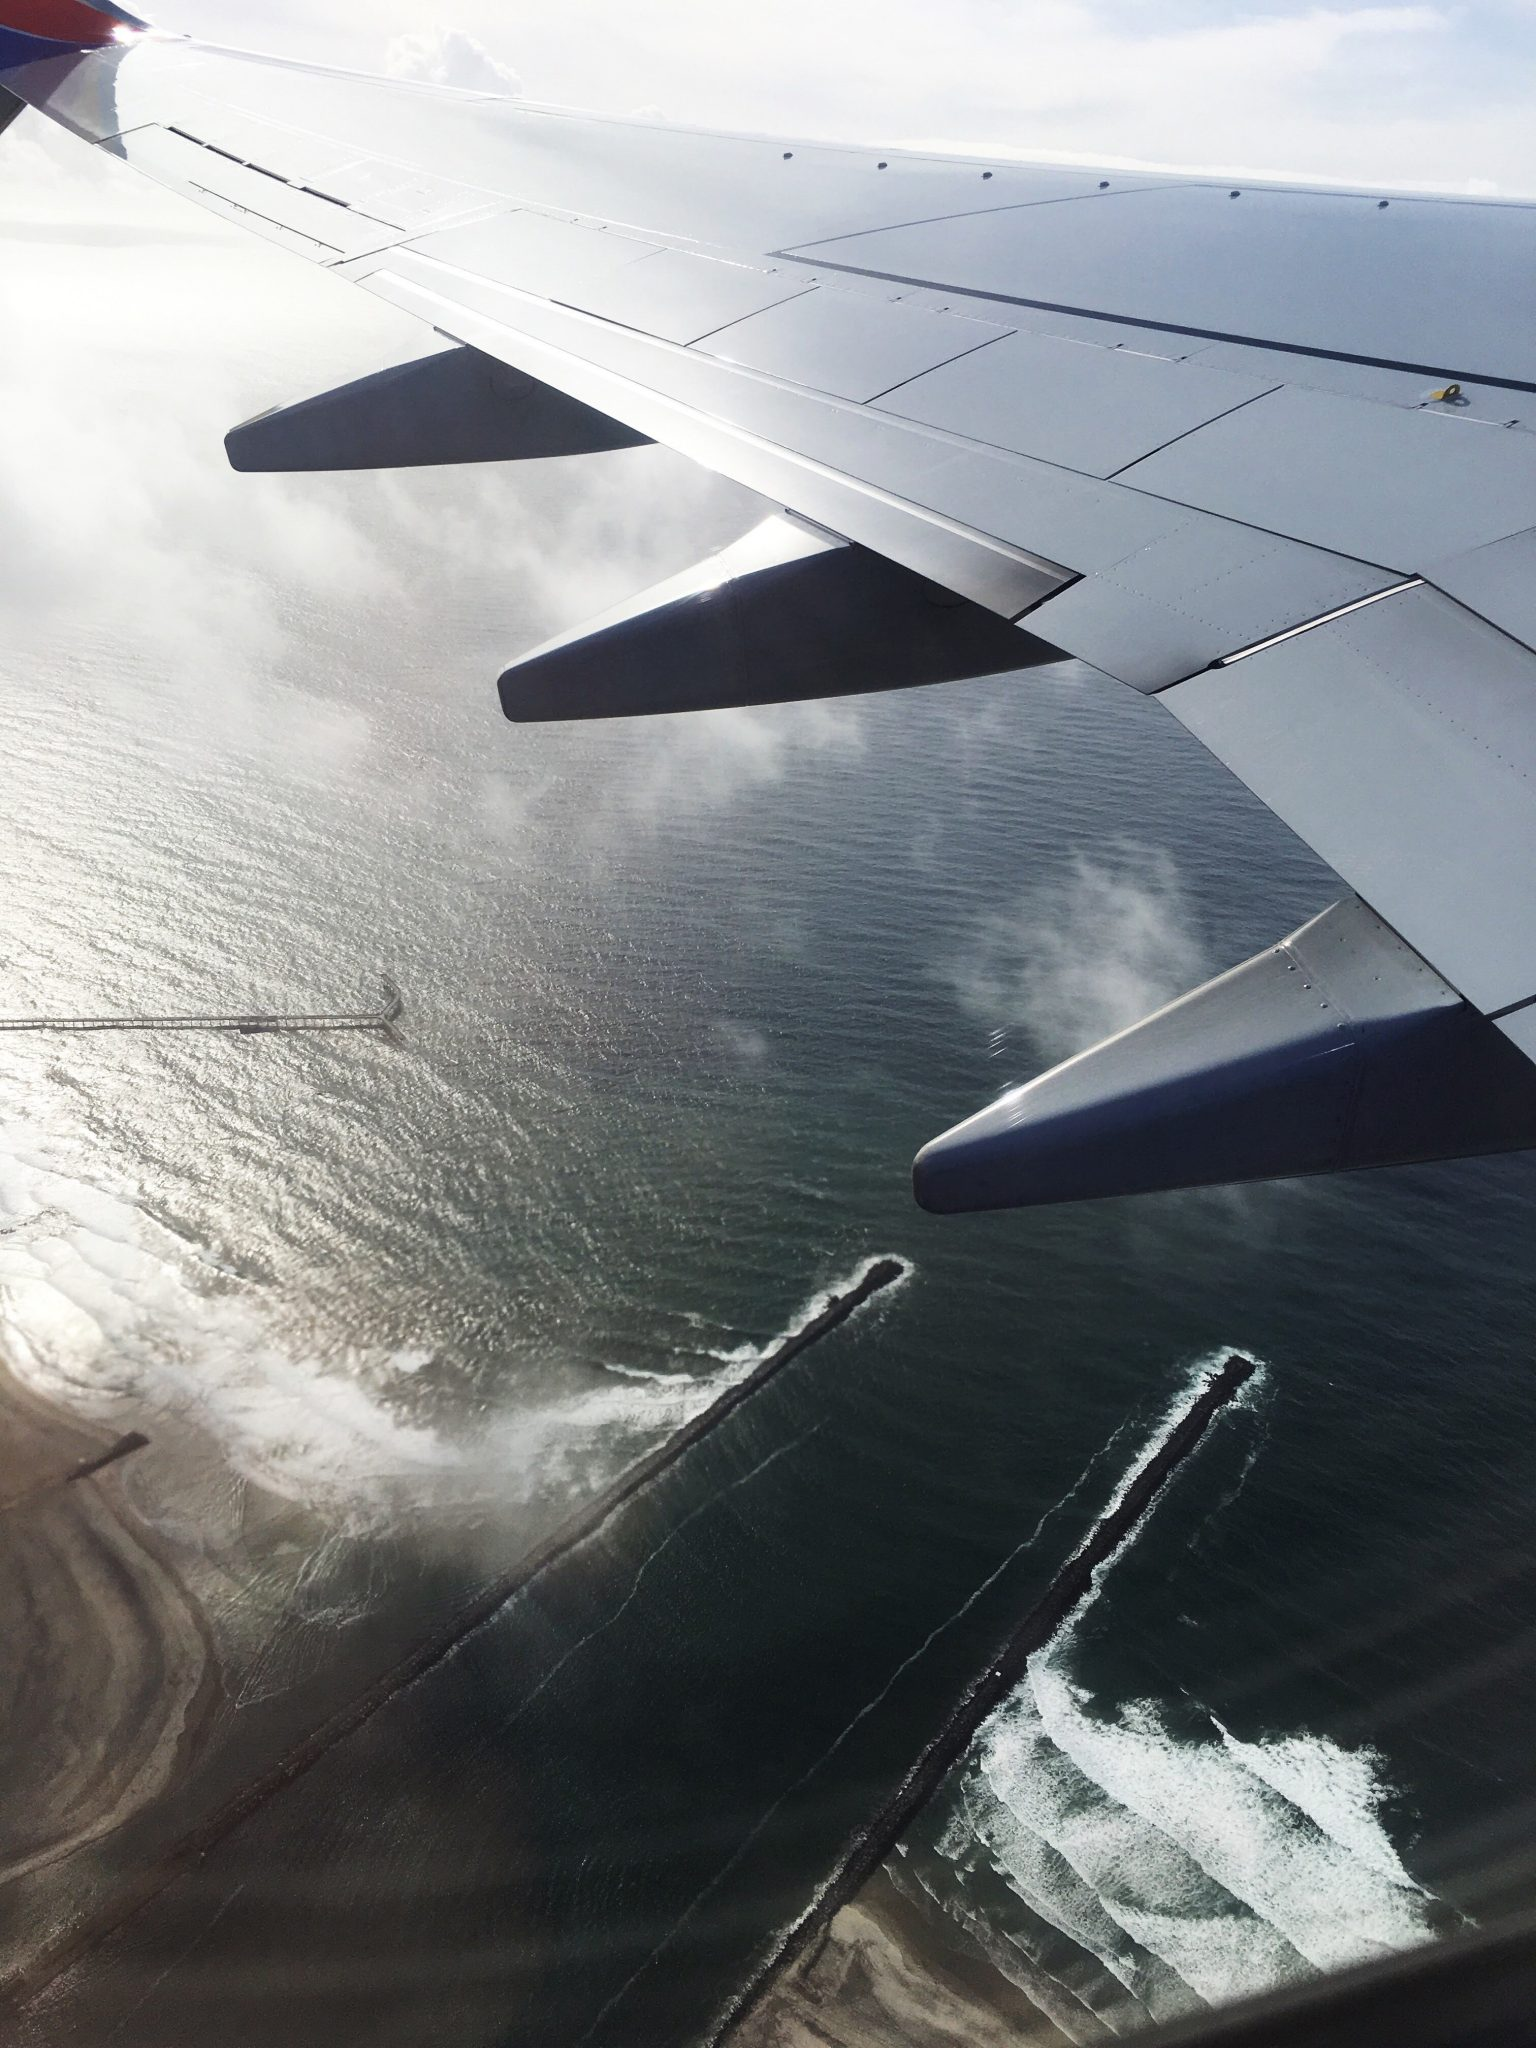 Travel - Captured plane wing, flying over the Pacific Ocean near San Diego, California